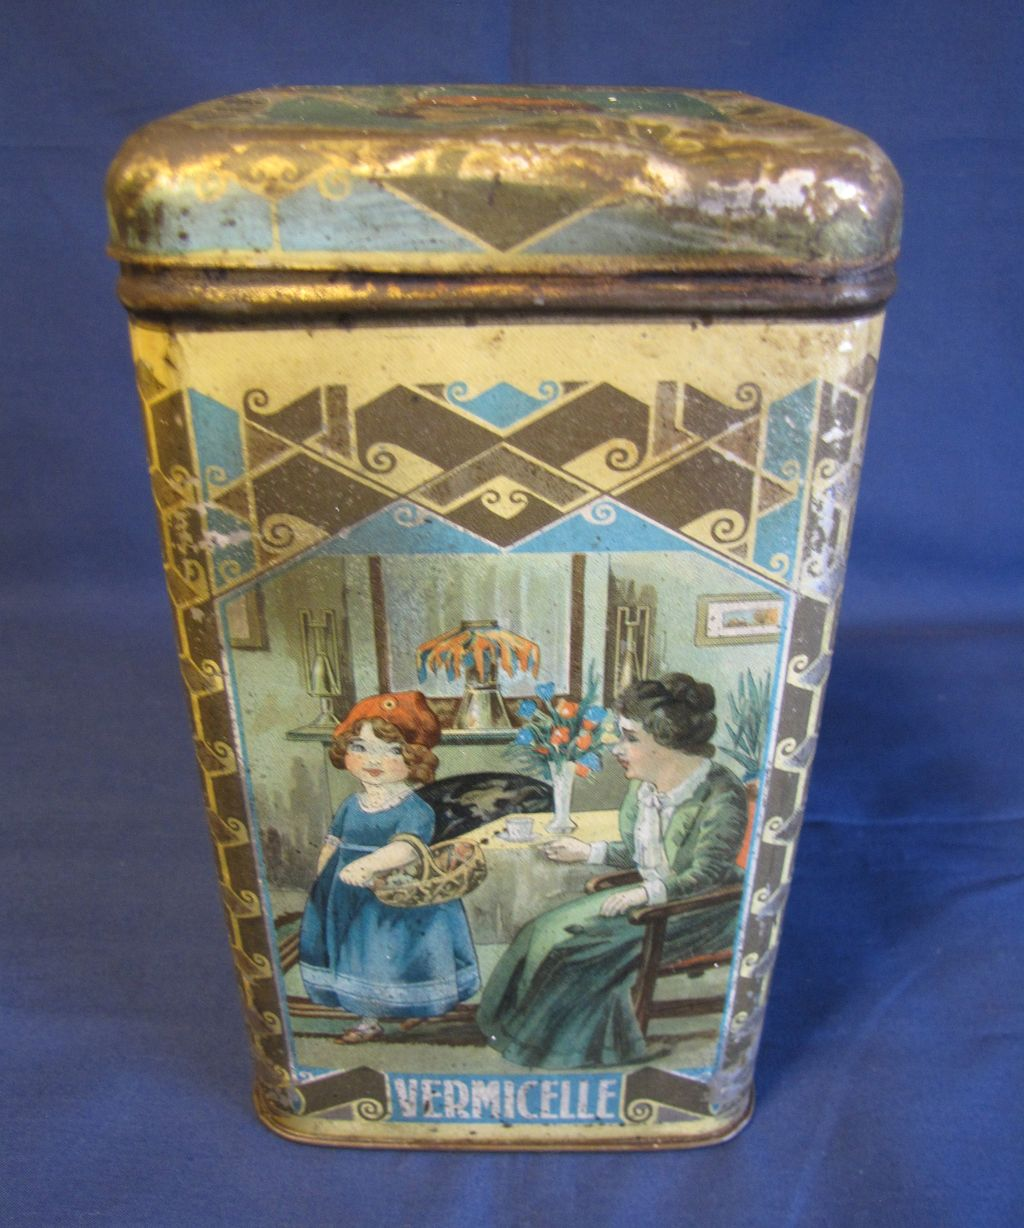 Very Early Advertising Tin, LITTLE RED RIDING HOOD, Vermicelle